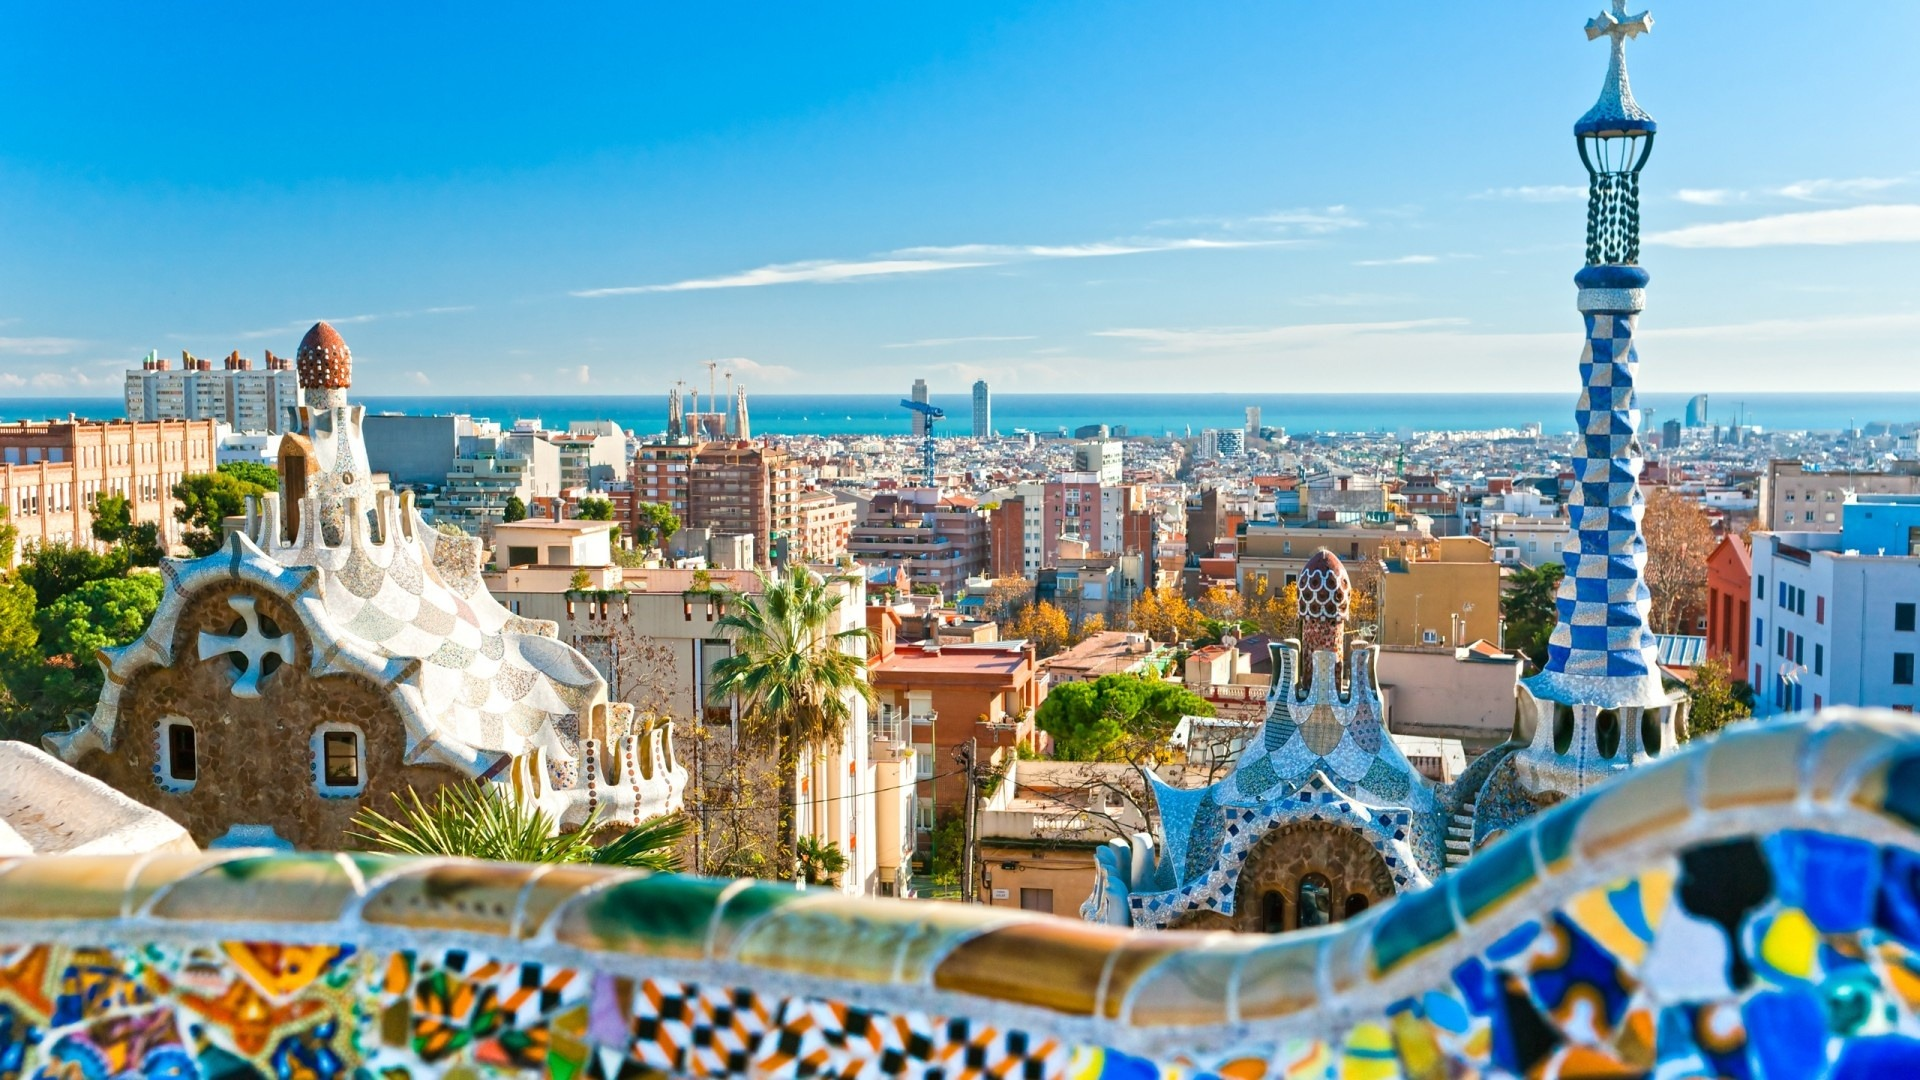 a beautiful view of a city of spain with ocean view afar